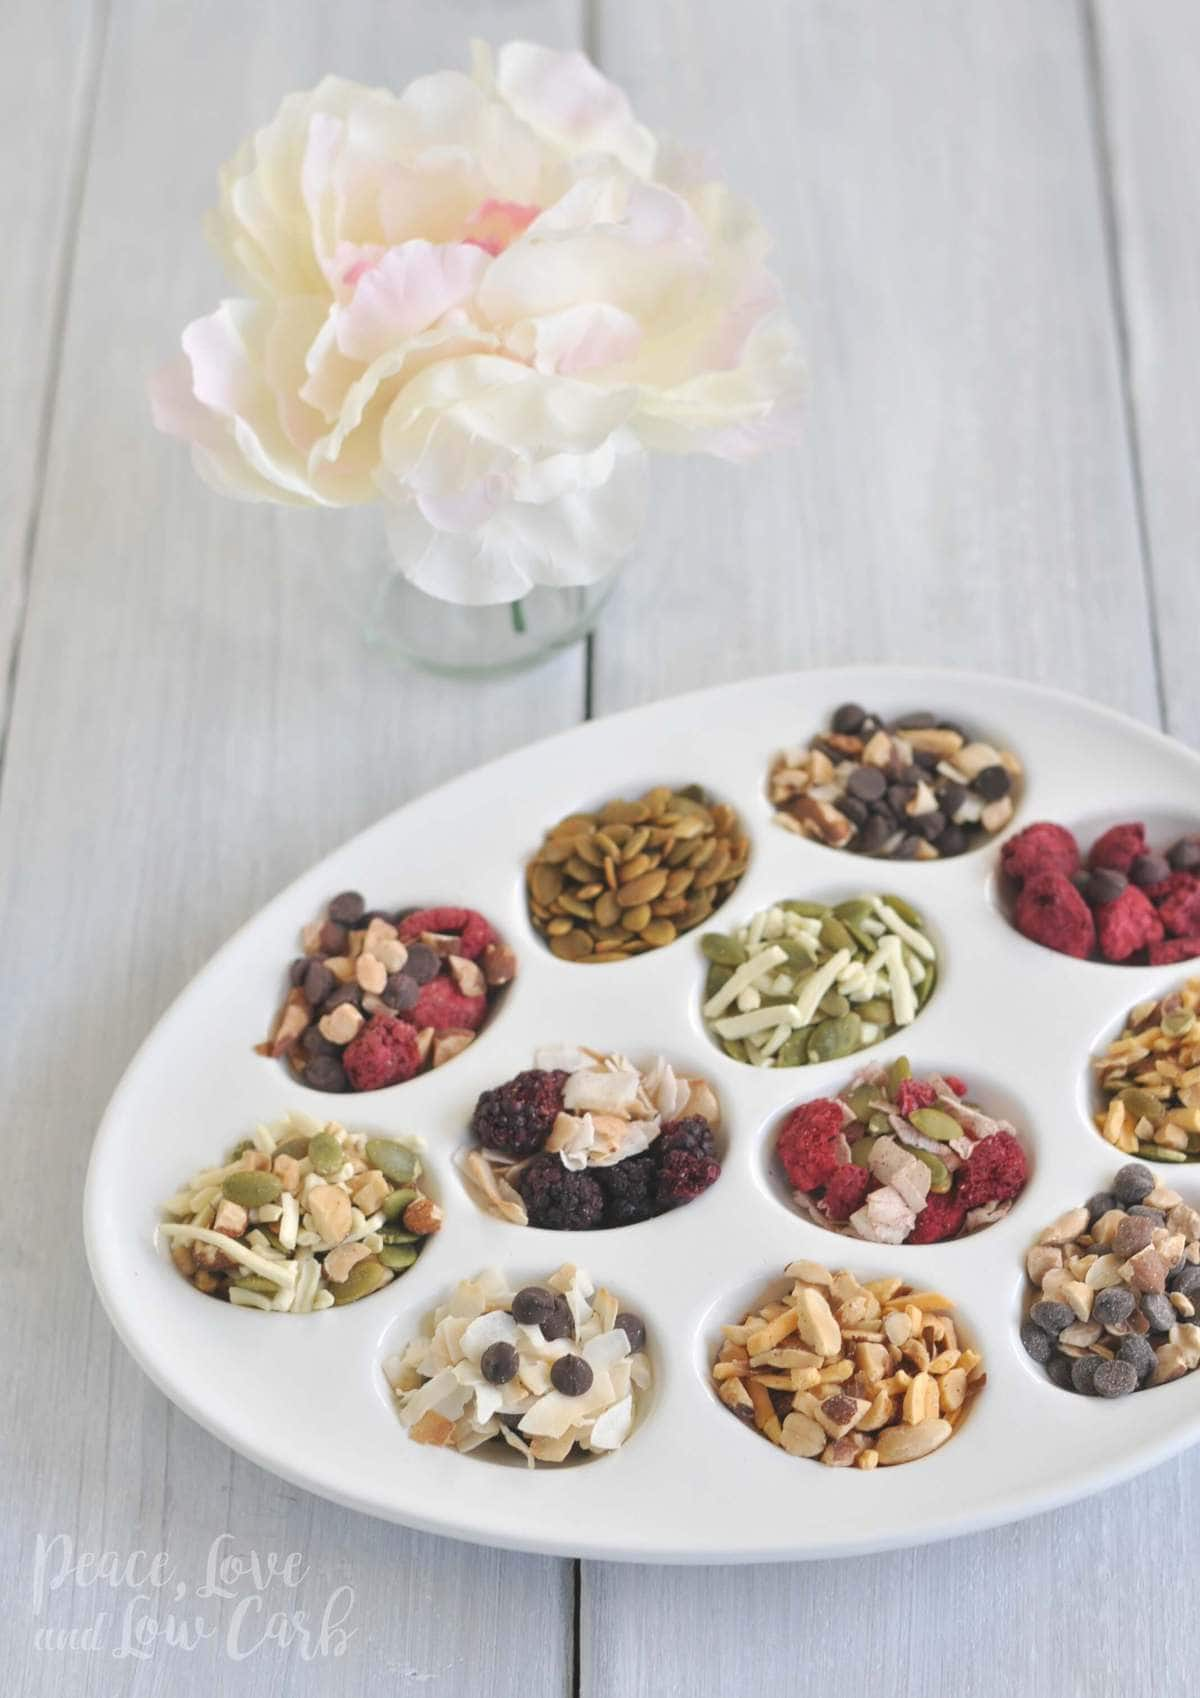 Portable Low Carb Keto Snacks   Peace Love and Low Carb